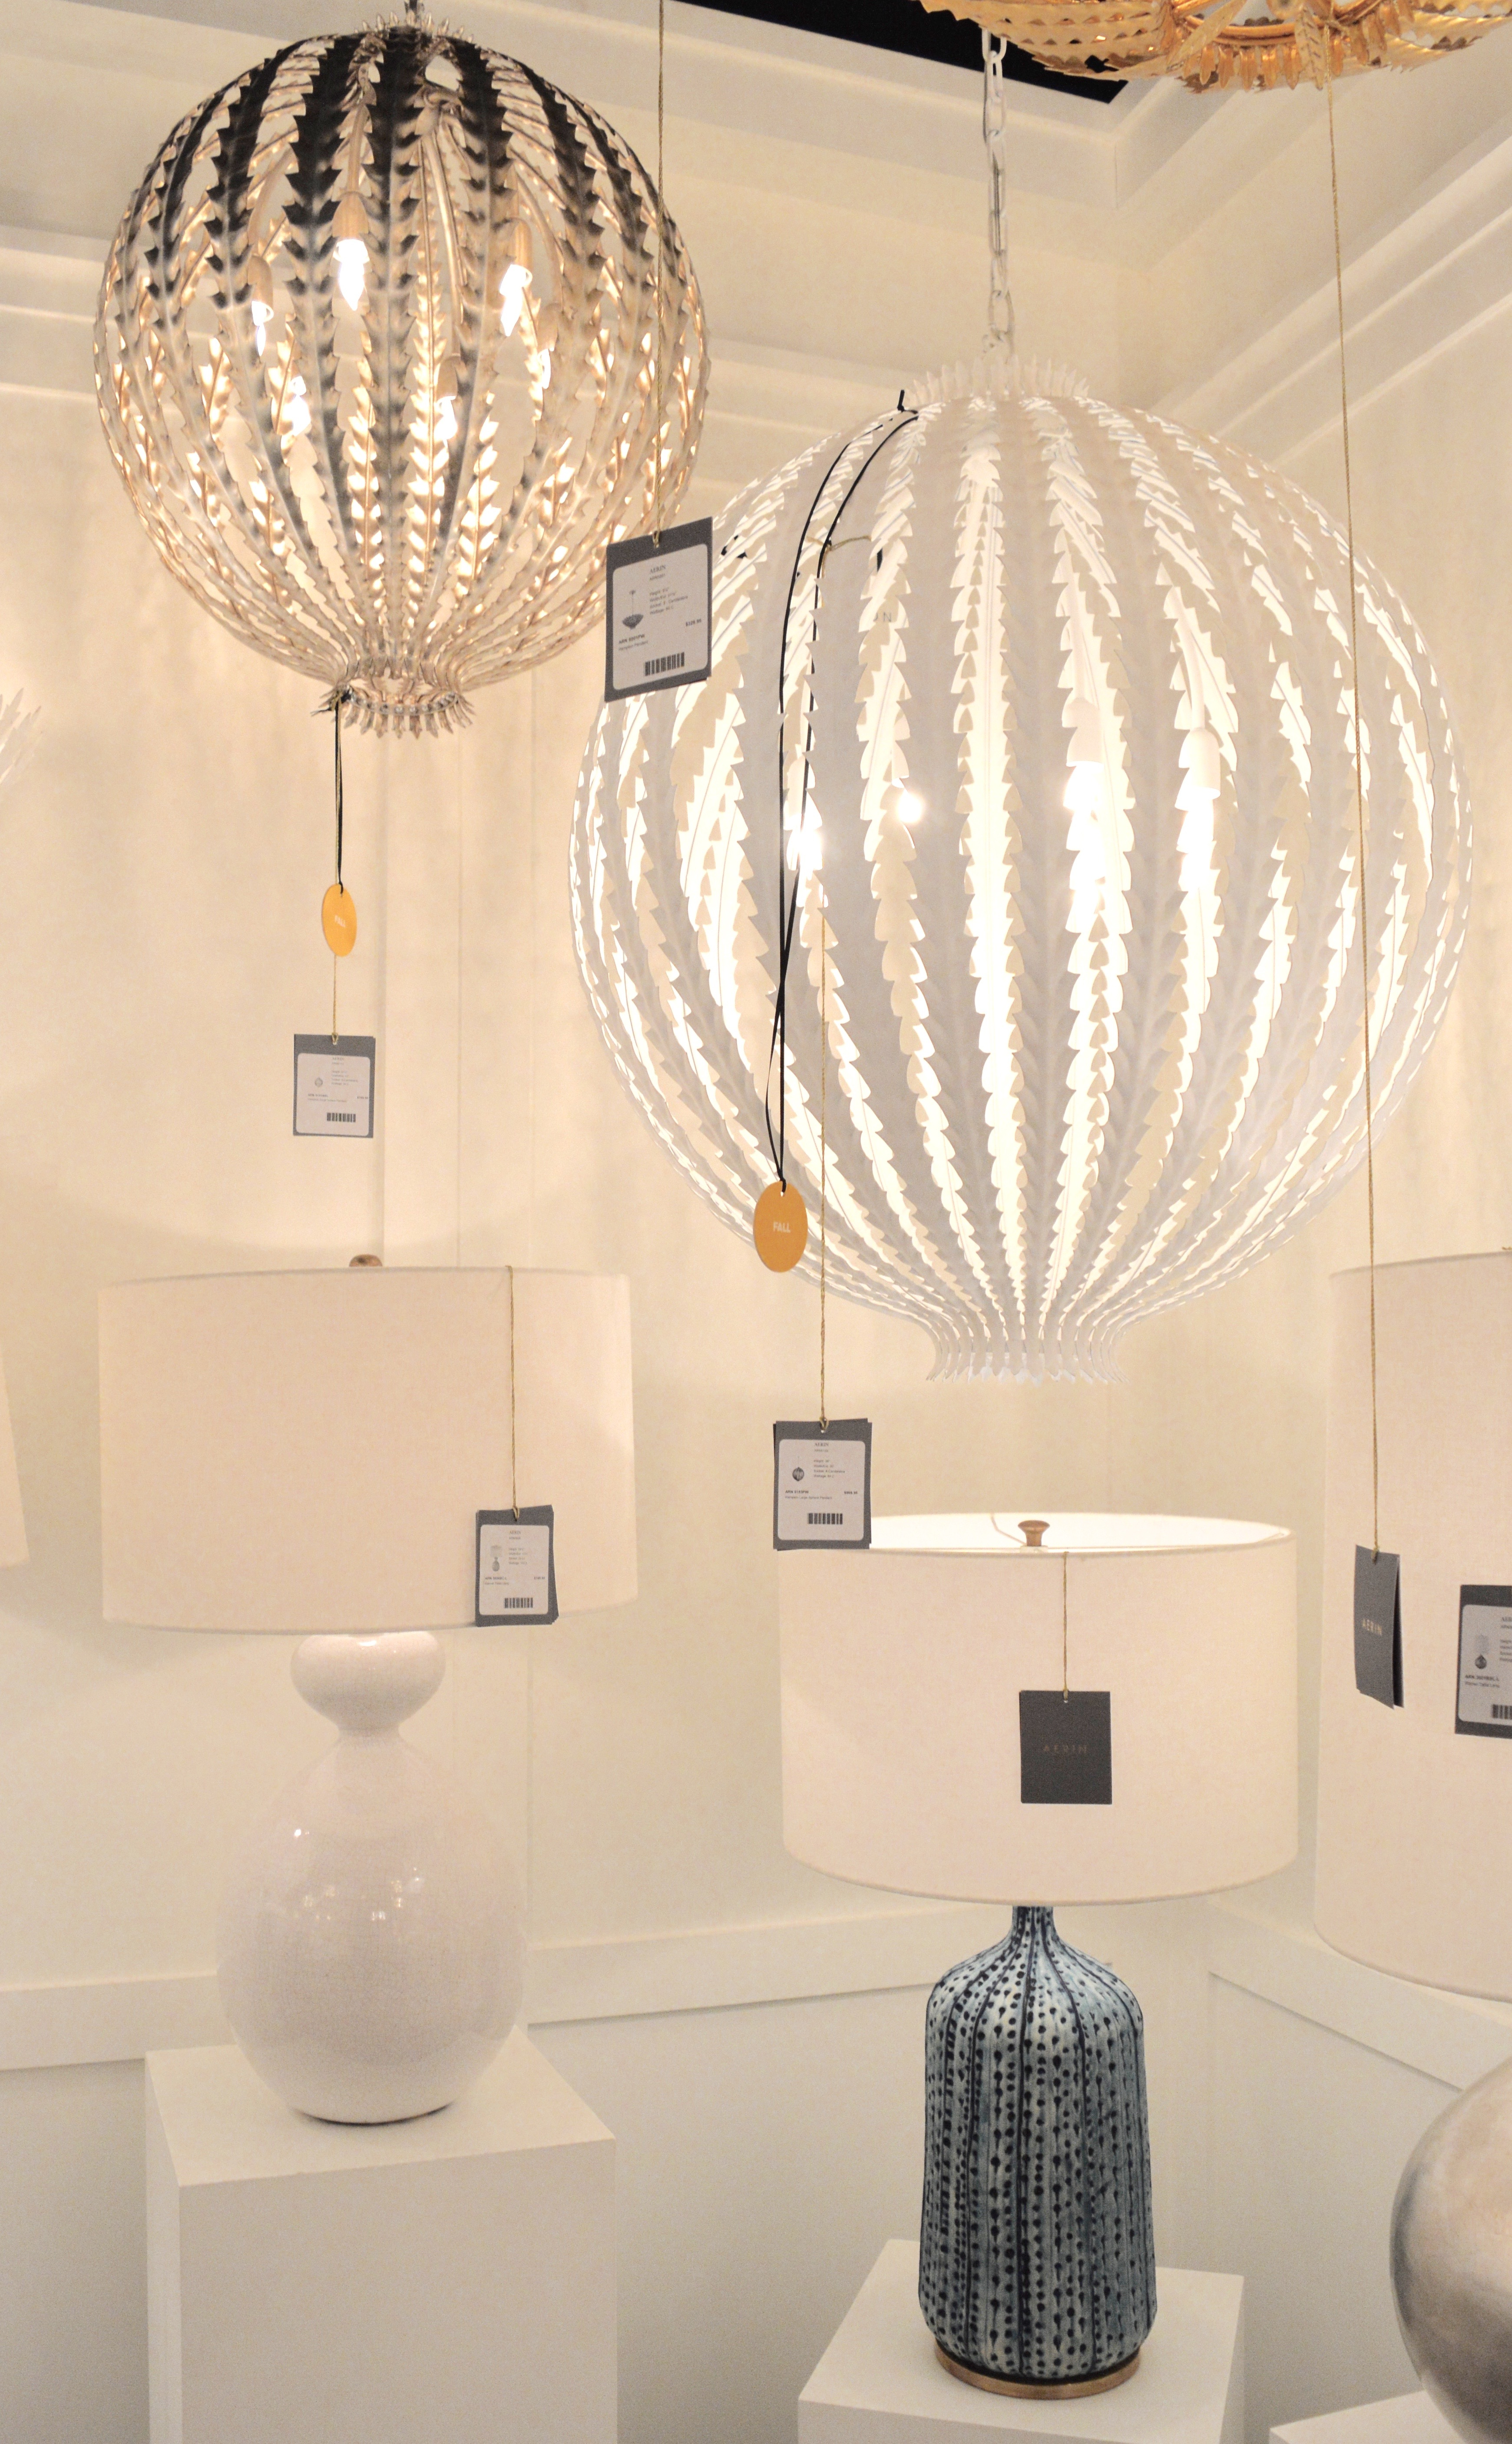 design visual comfort lighting at hpmktwhite cabana